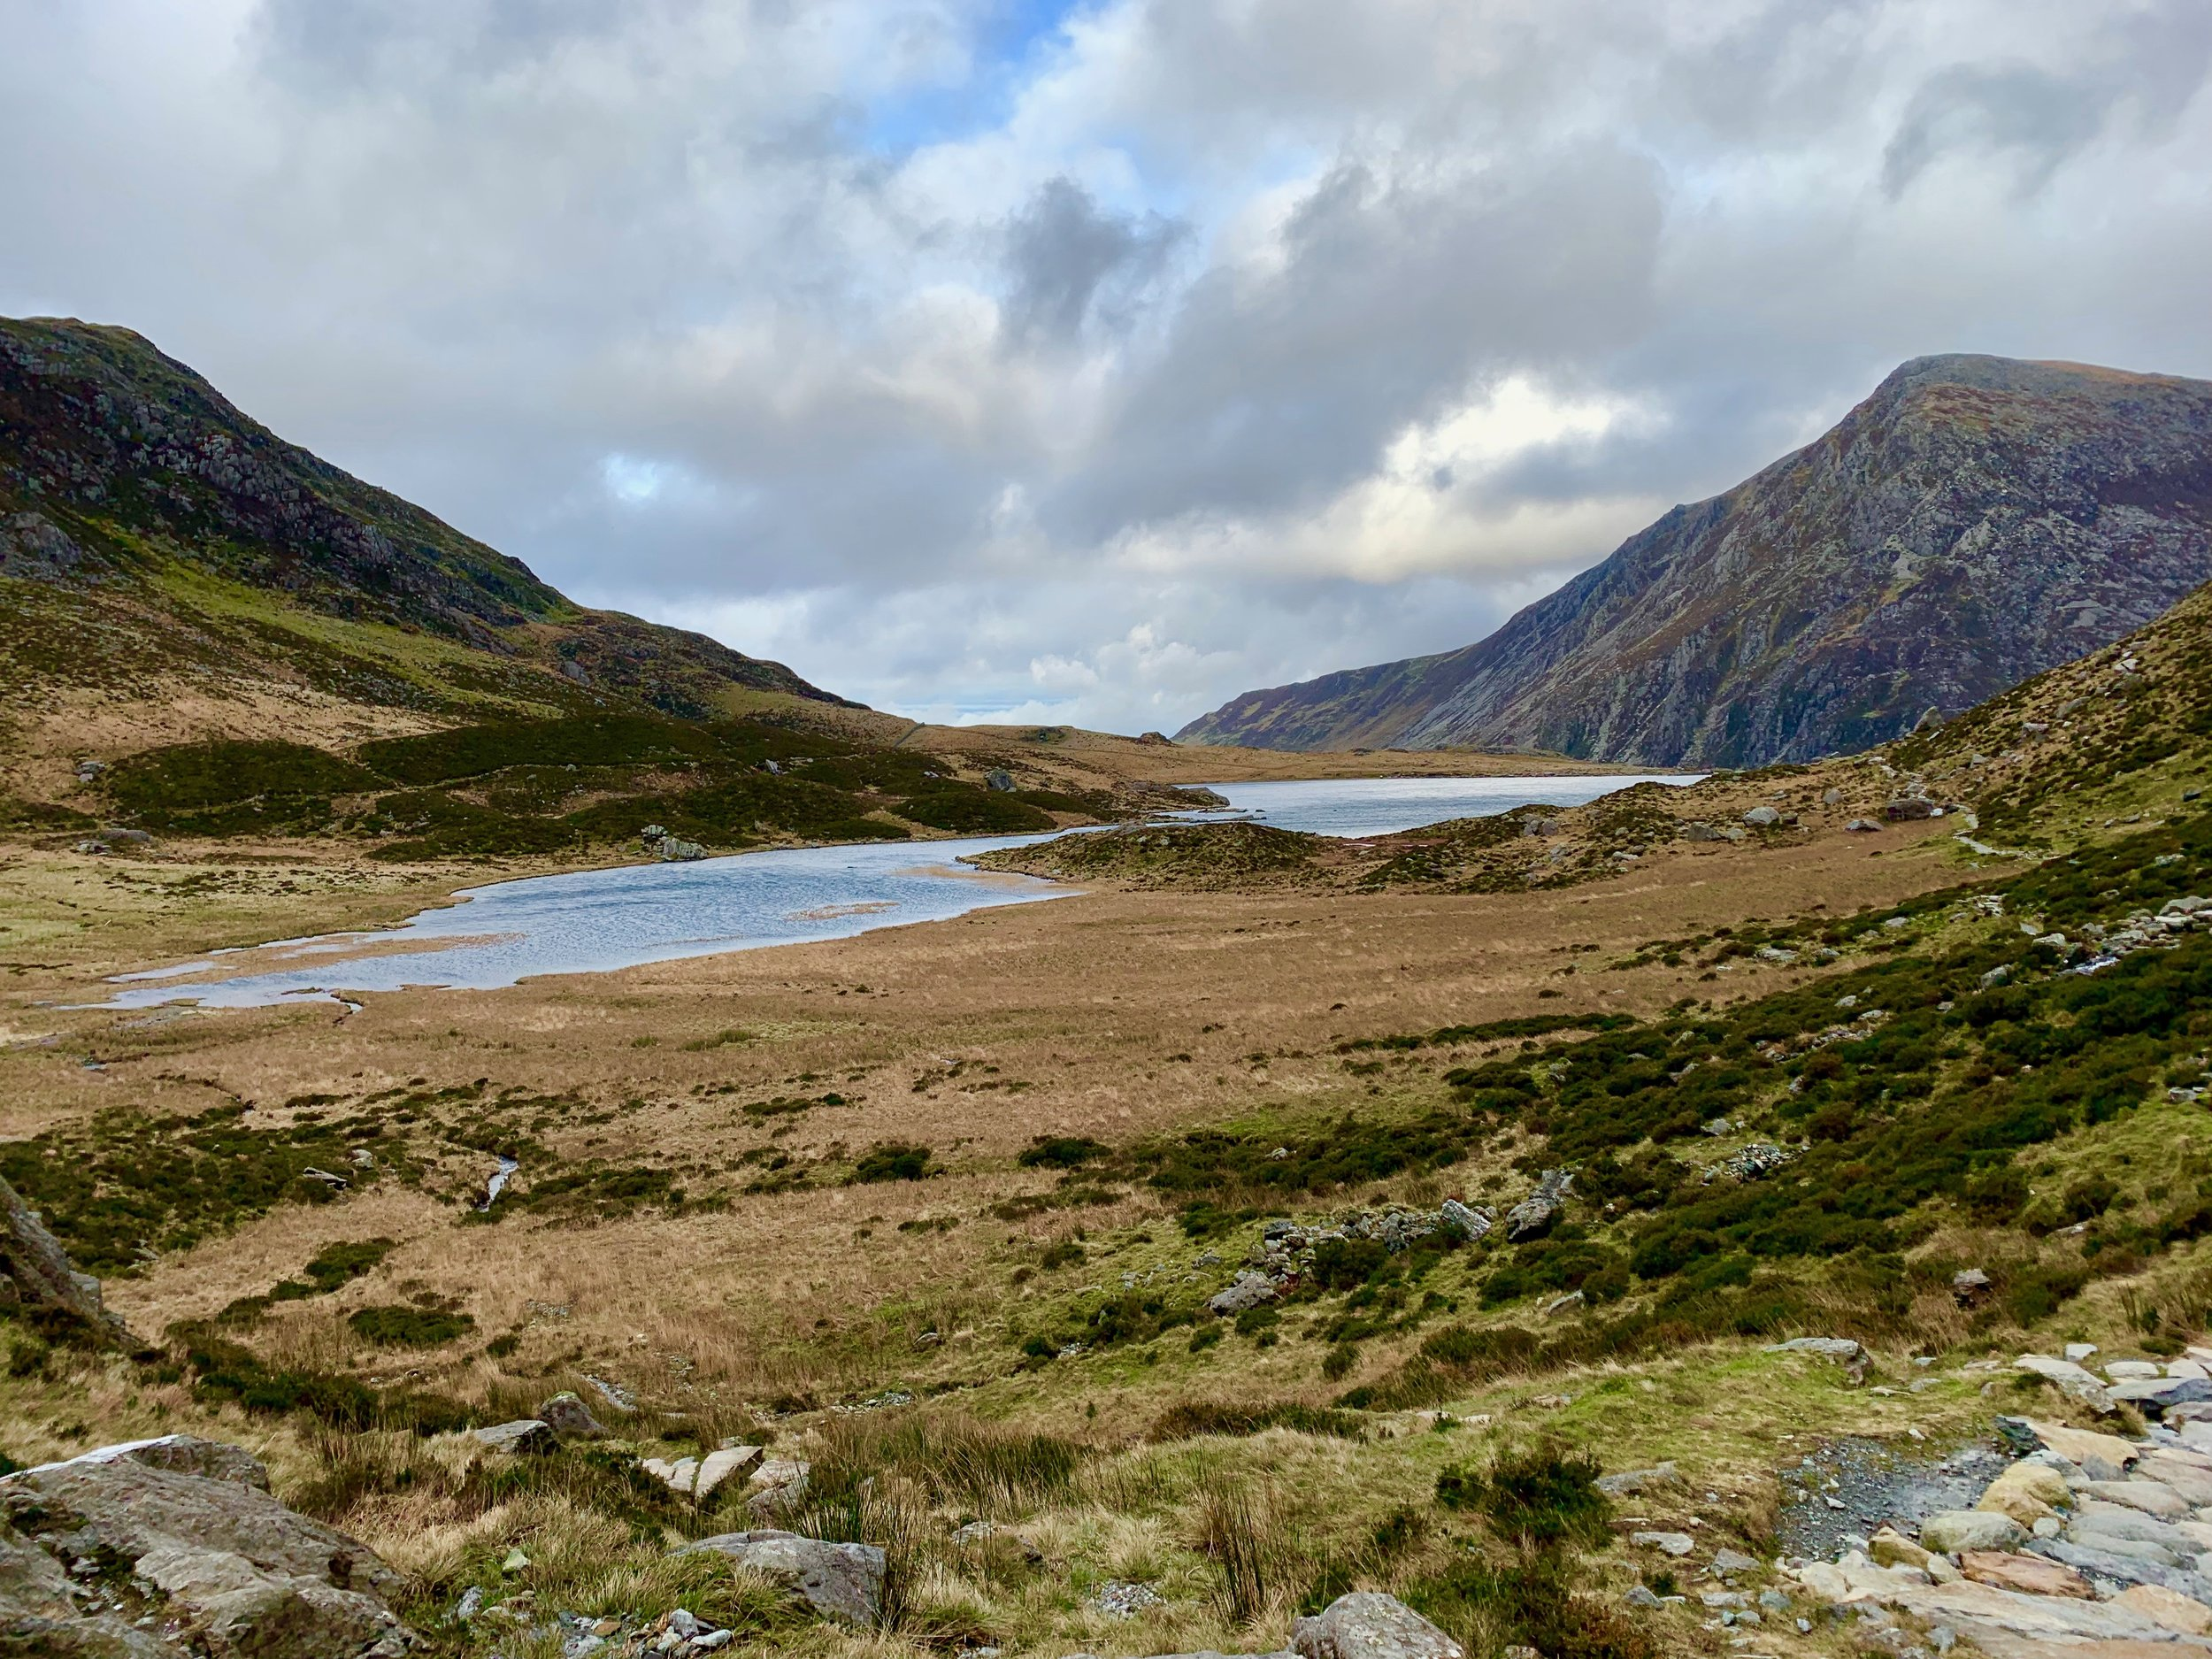 Llyn Idwal in Snowdonia National Park